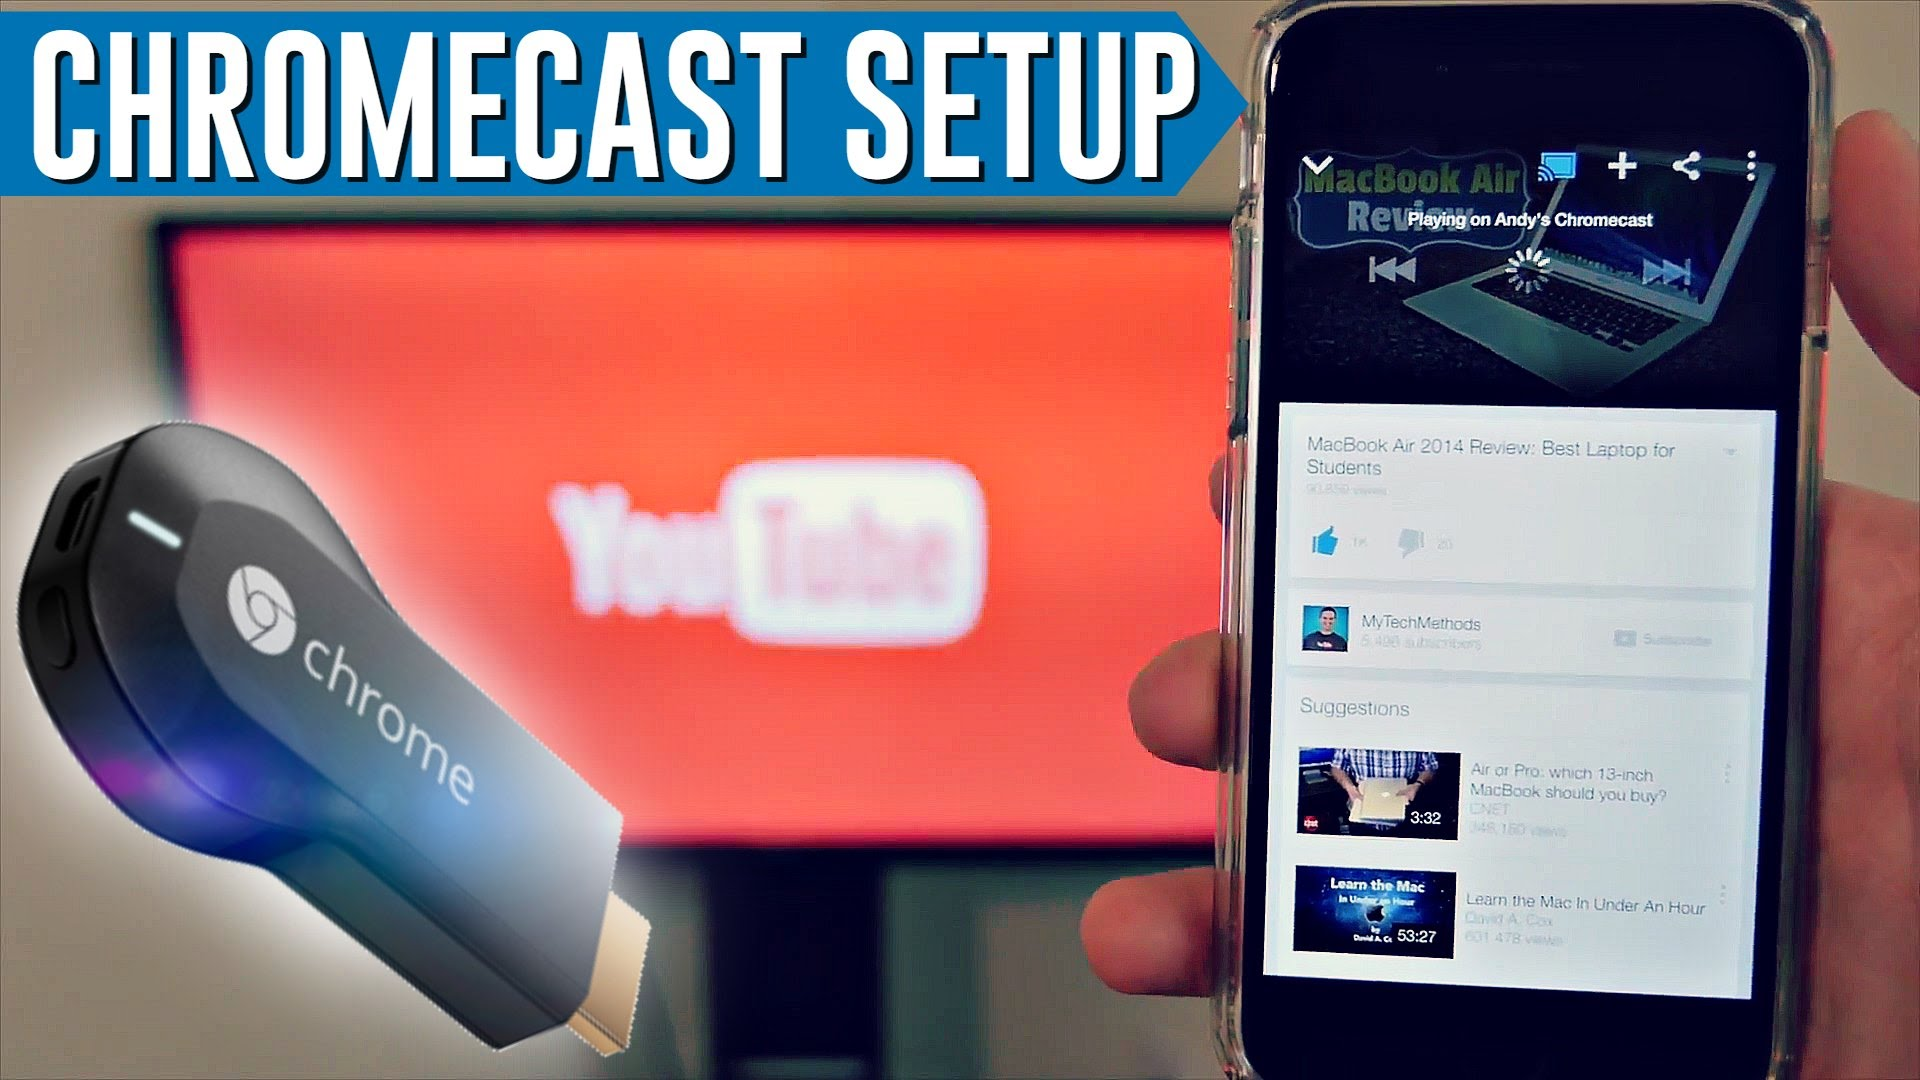 How To Stream TeaTV On Chromecast In 4 Steps - Full Guide